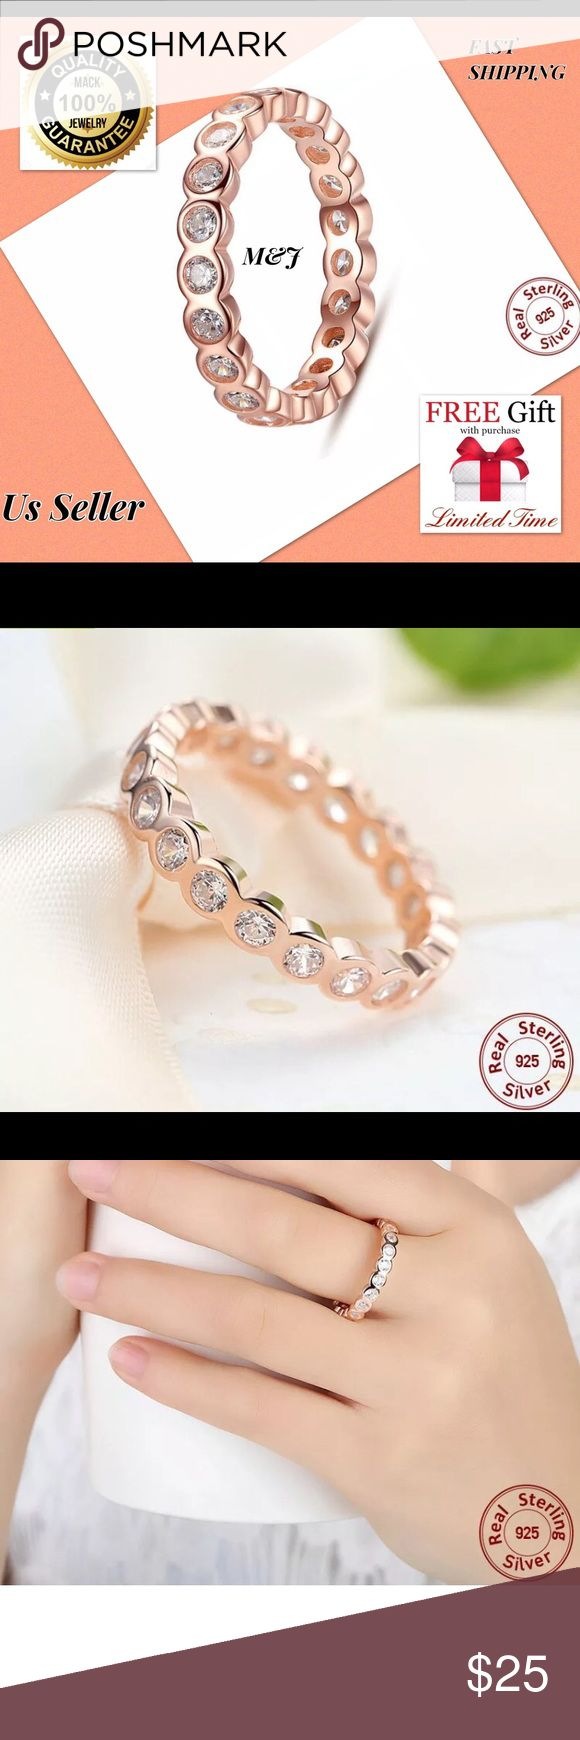 Rose gold925 sterling silver love band  ring siz 7 Feature 100% Brand New Material: 925 Silver AAA Zircon Crystal  Size: 7 Wearing Occasion: Wedding/ Engagement/ Anniversary/ Propose/ Party/ Gift Gift for: Girl friend/ Wife/ Mother/ Friends/Sister  We are the new seller but best seller. Now we have a limited time big promotion.  You can use or give gift your mom, dad, friend, sister... When you buy this item Nano technolog Microfiber claening Cloth $19.99 value is free for you! Jewelry Rings